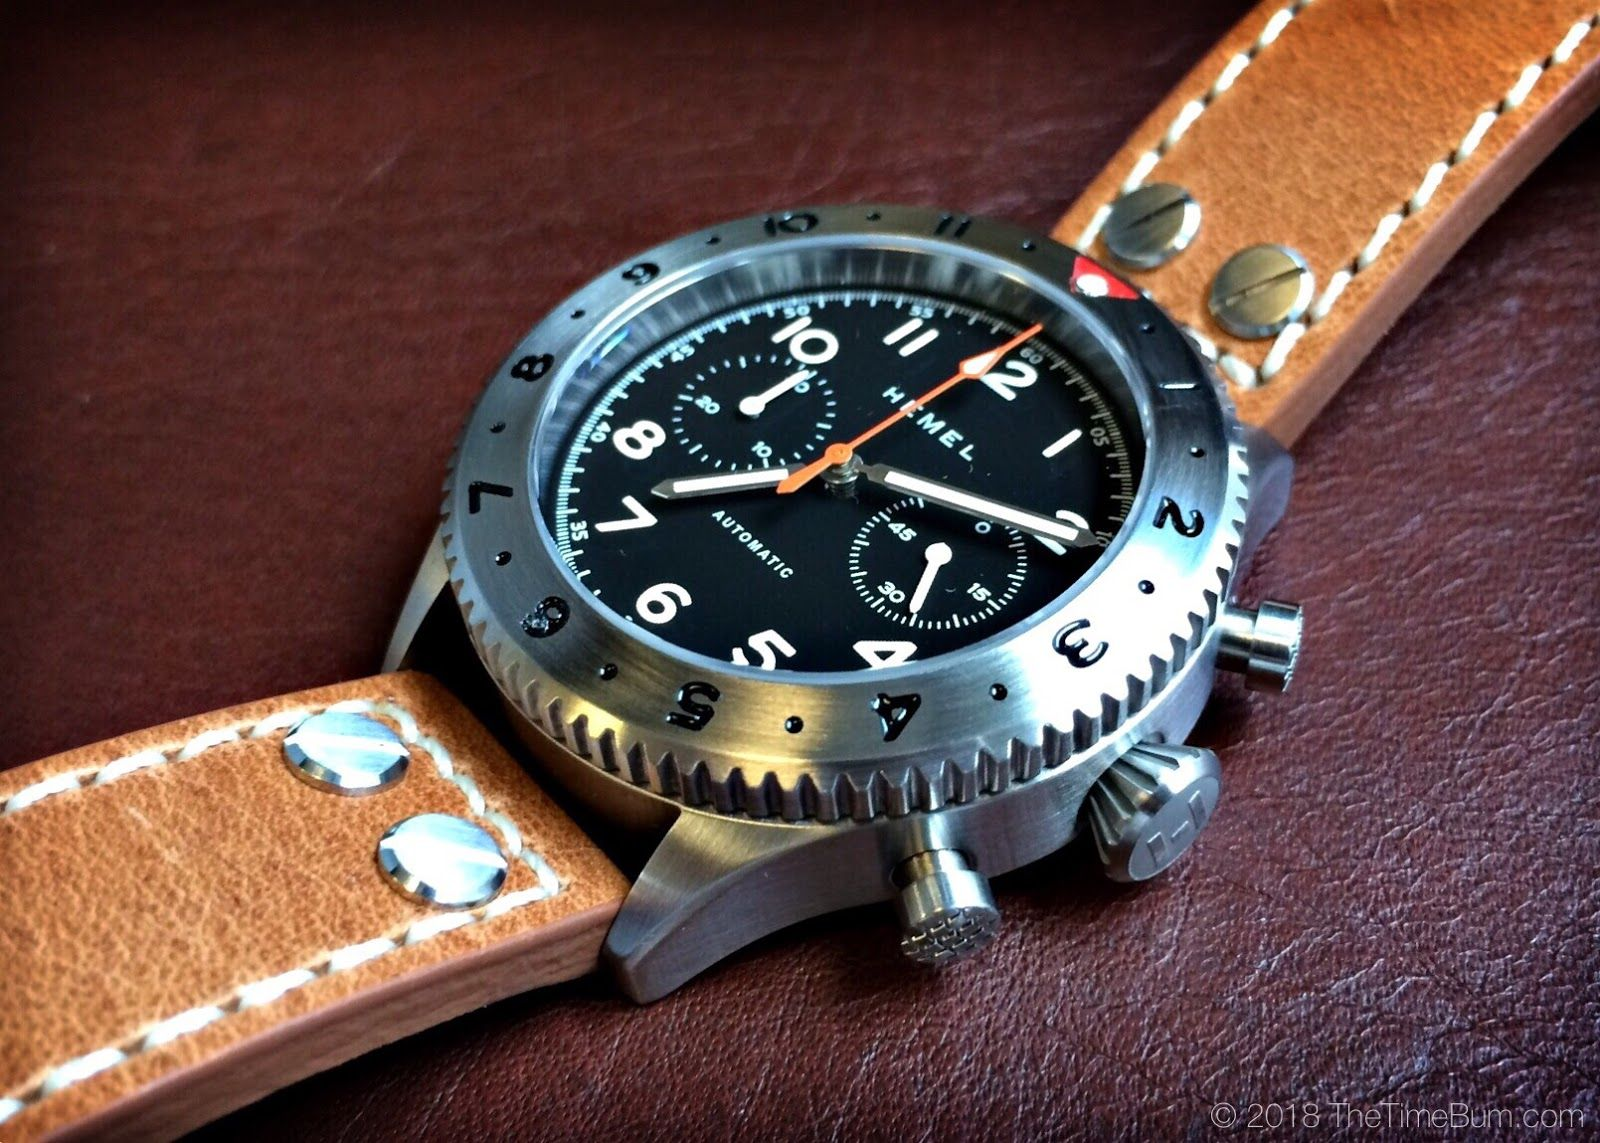 Pin By Adolfo On Watches Watches Leather Watch Rolex Watches